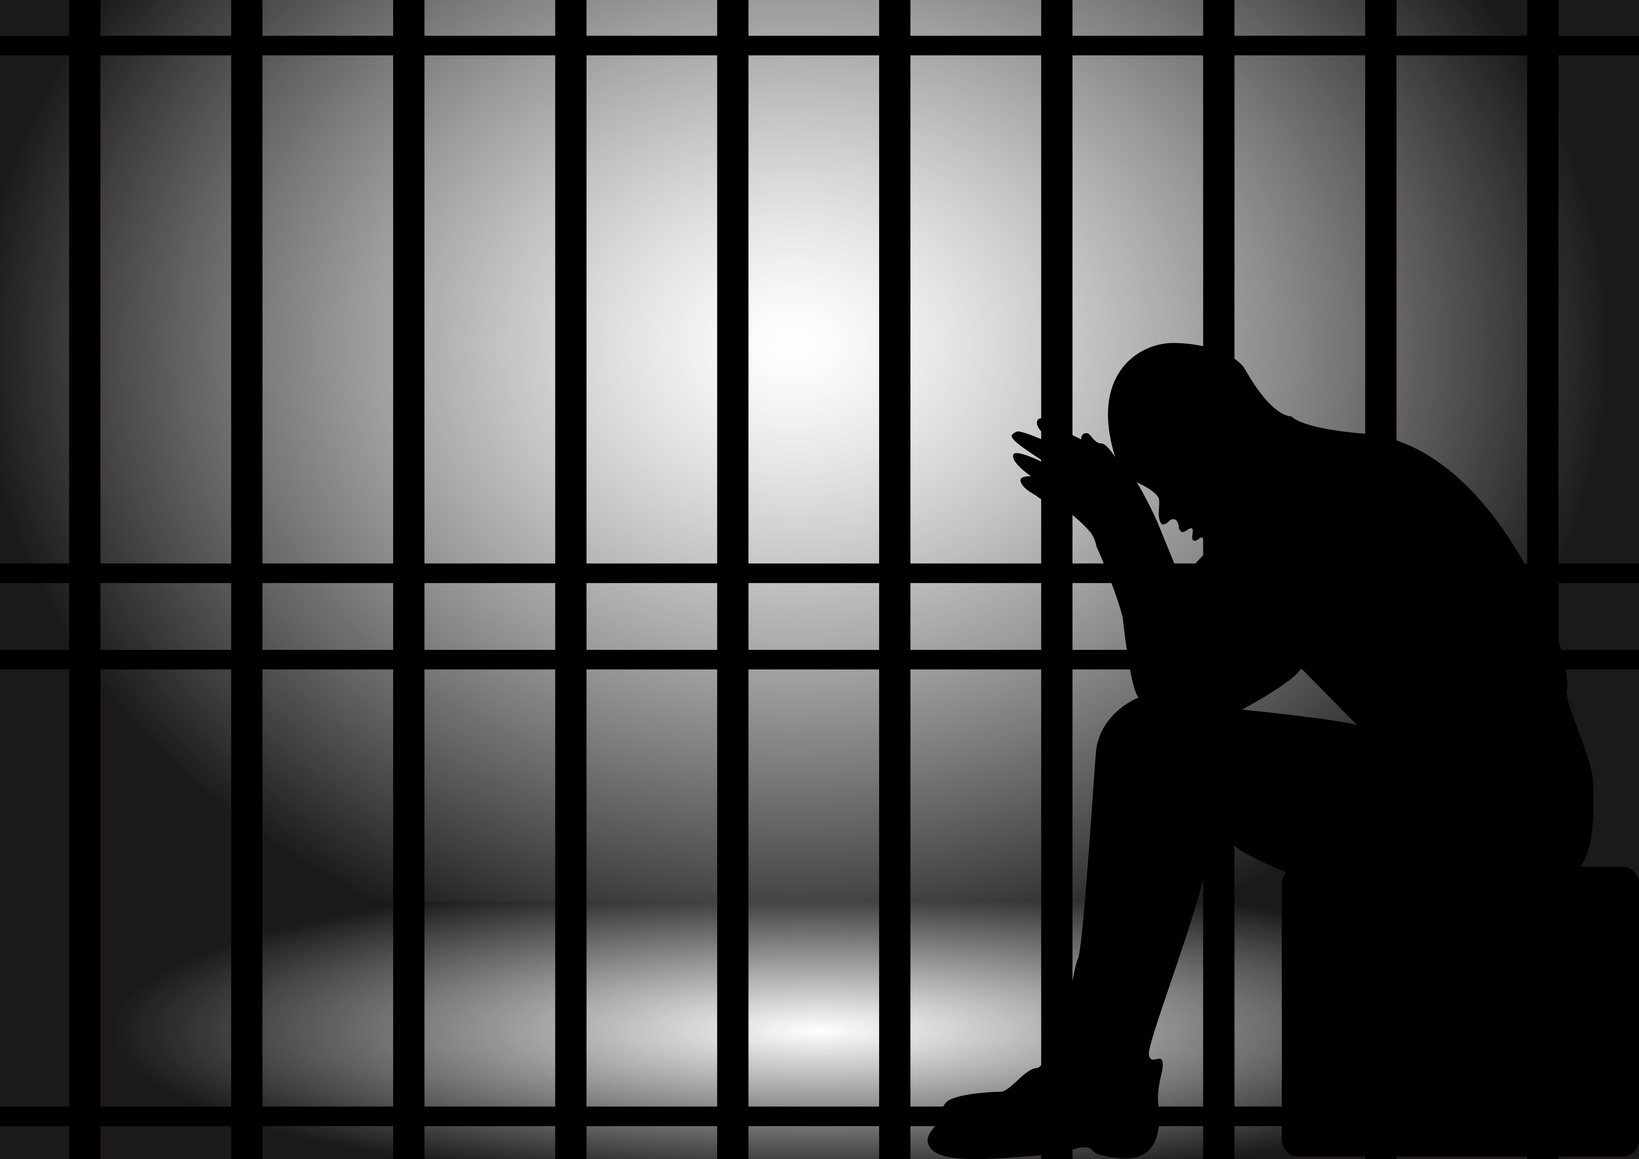 how_to_decide_if_you_should_bail_someone_out_of_jail_when_arrested